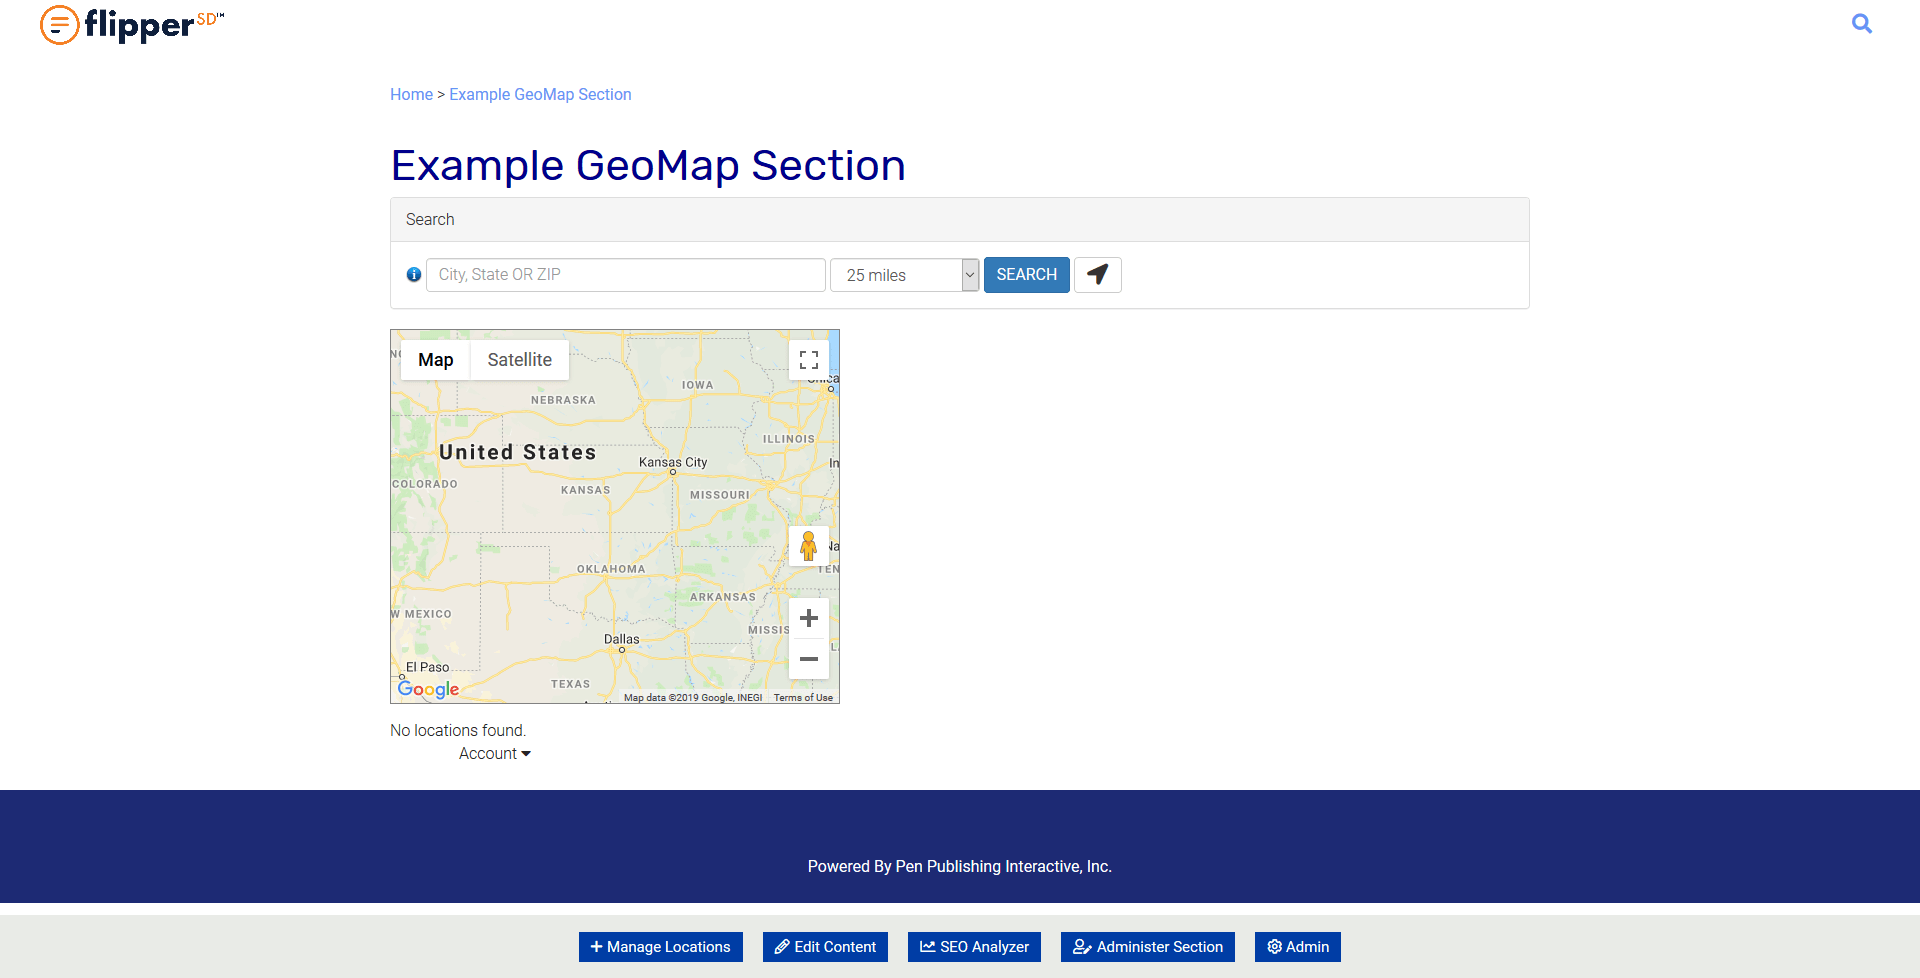 GeoMap-Page View